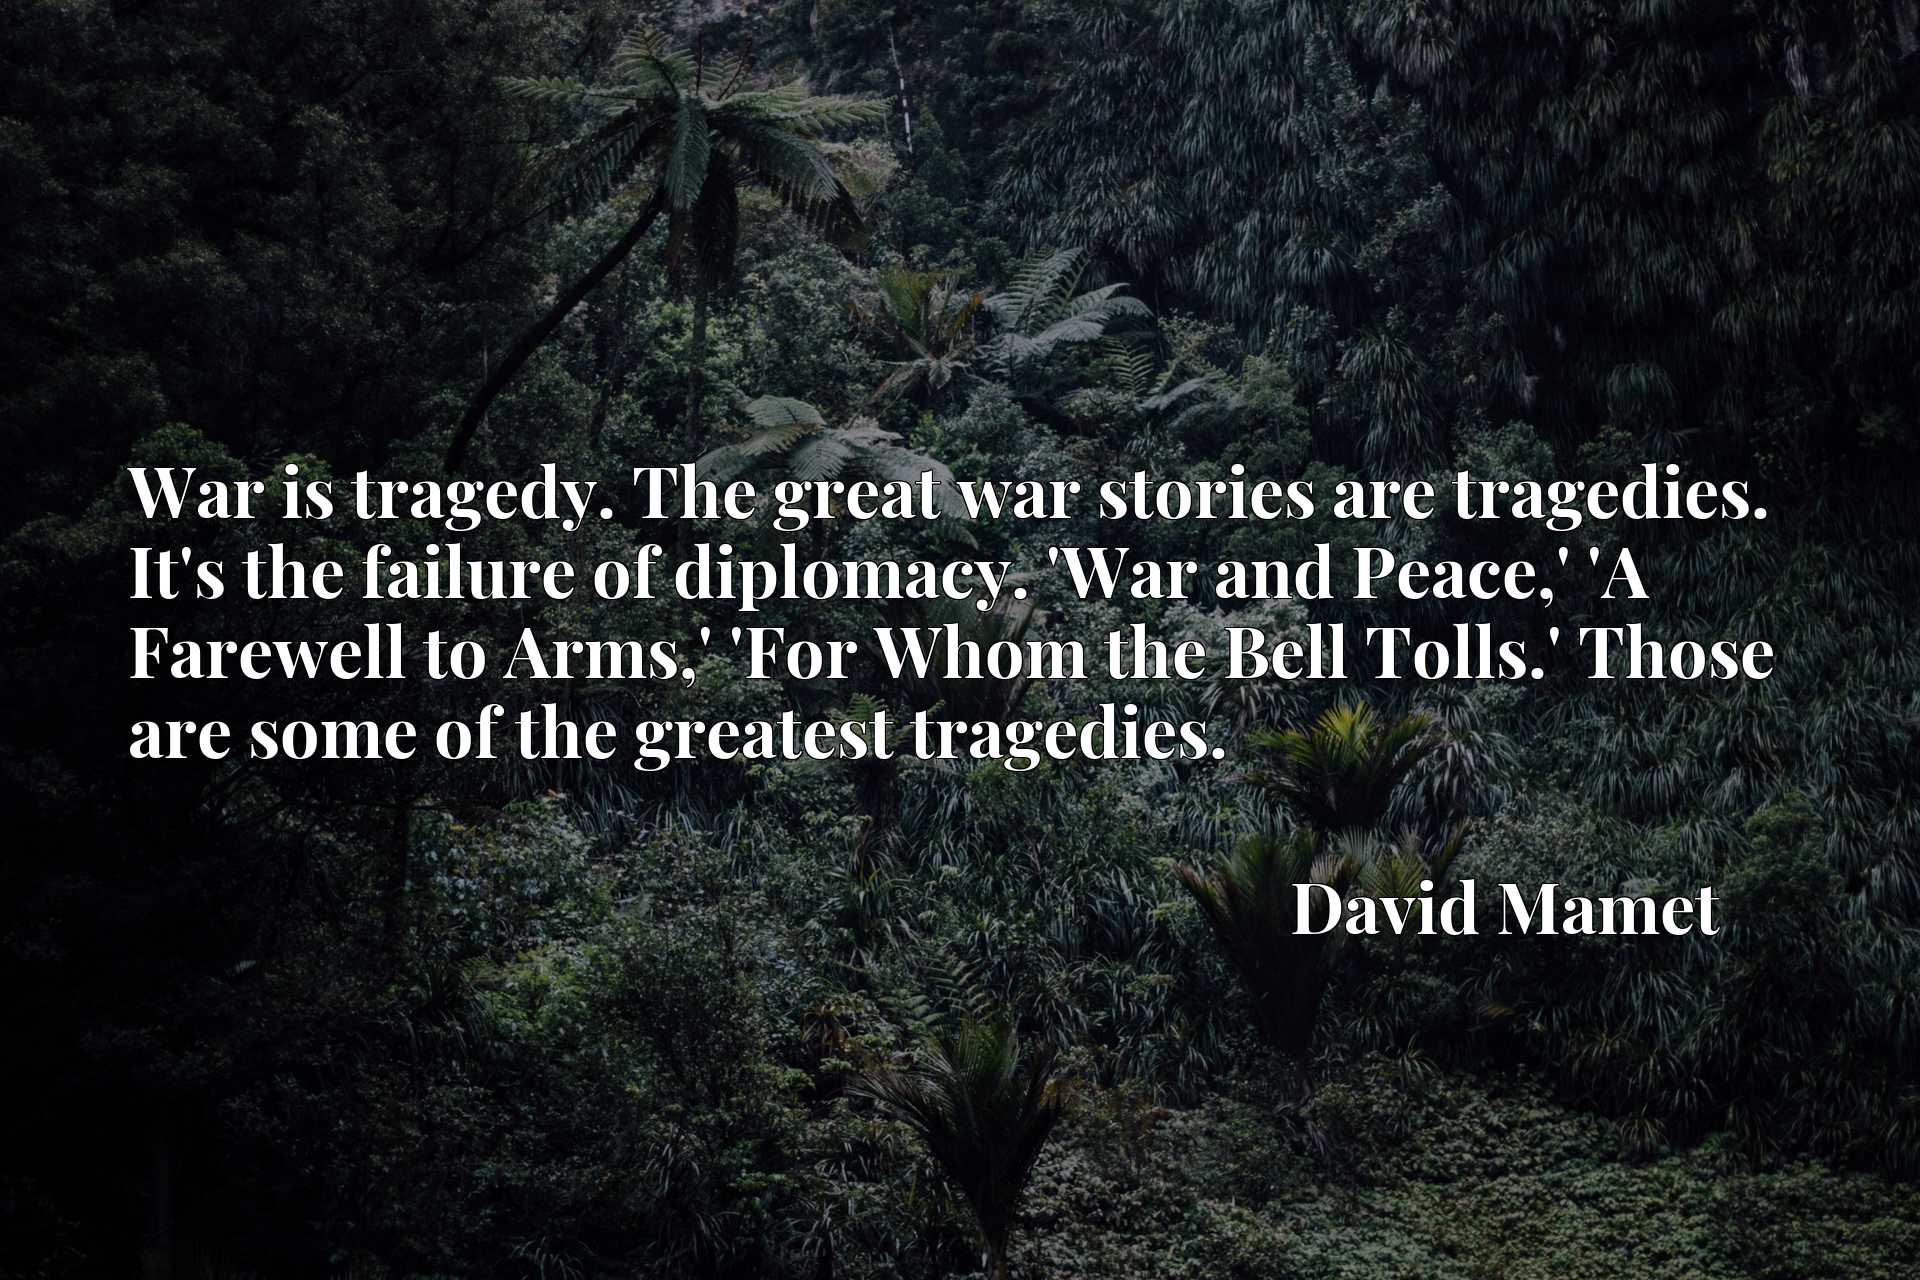 War is tragedy. The great war stories are tragedies. It's the failure of diplomacy. 'War and Peace,' 'A Farewell to Arms,' 'For Whom the Bell Tolls.' Those are some of the greatest tragedies.